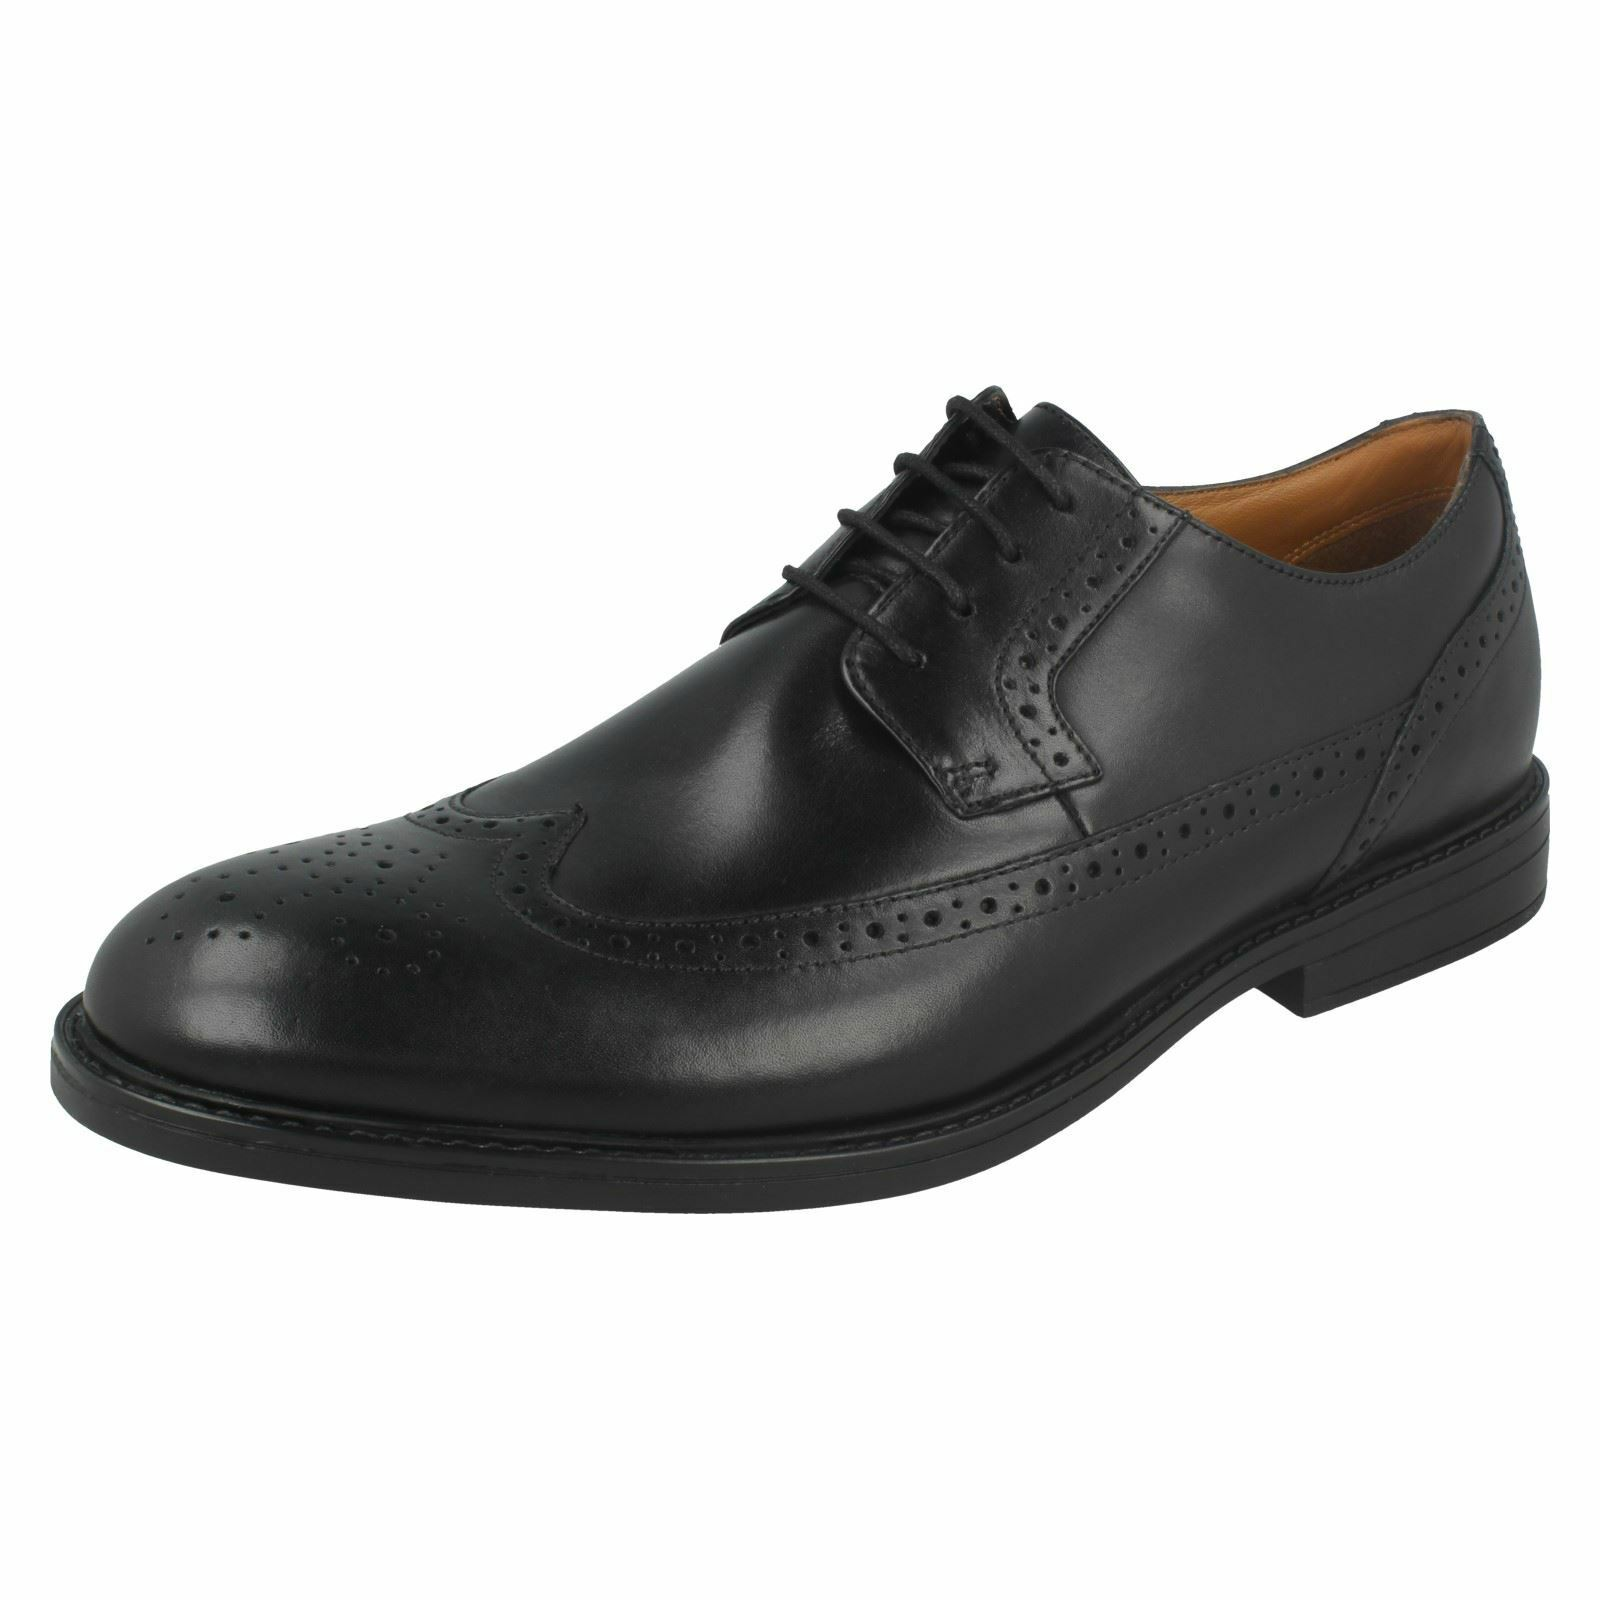 Mens Clarks Formal Low Leather Block Heel Lace Up Leather Low Brogues Beckfield Limit 233b4e